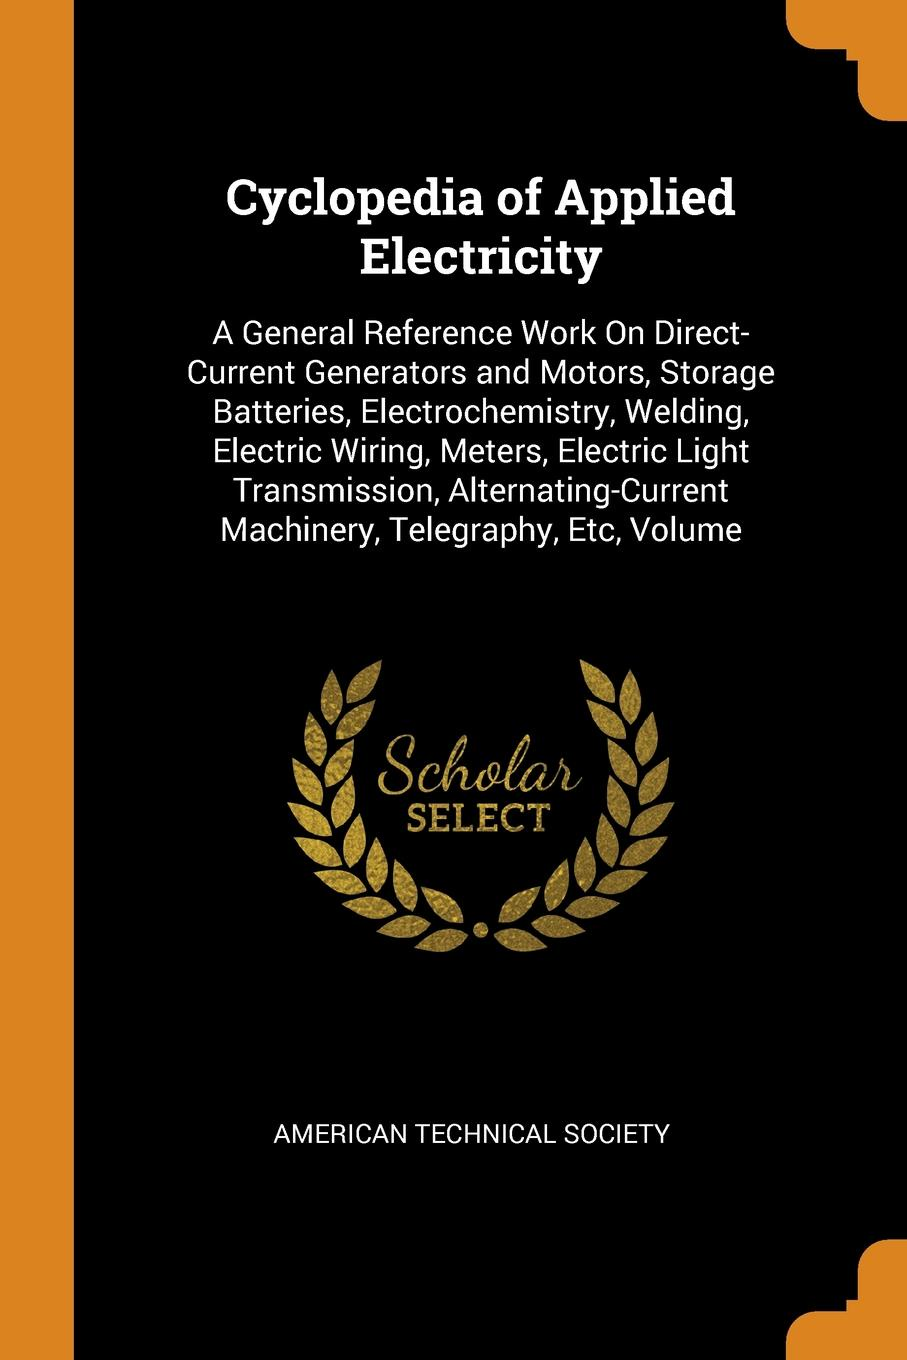 Cyclopedia of Applied Electricity. A General Reference Work On Direct-Current Generators and Motors, Storage Batteries, Electrochemistry, Welding, Electric Wiring, Meters, Electric Light Transmission, Alternating-Current Machinery, Telegraphy, Etc... direct manufacturer high quality this electric bass is very beautiful custom made and free ship this is the best choice for you